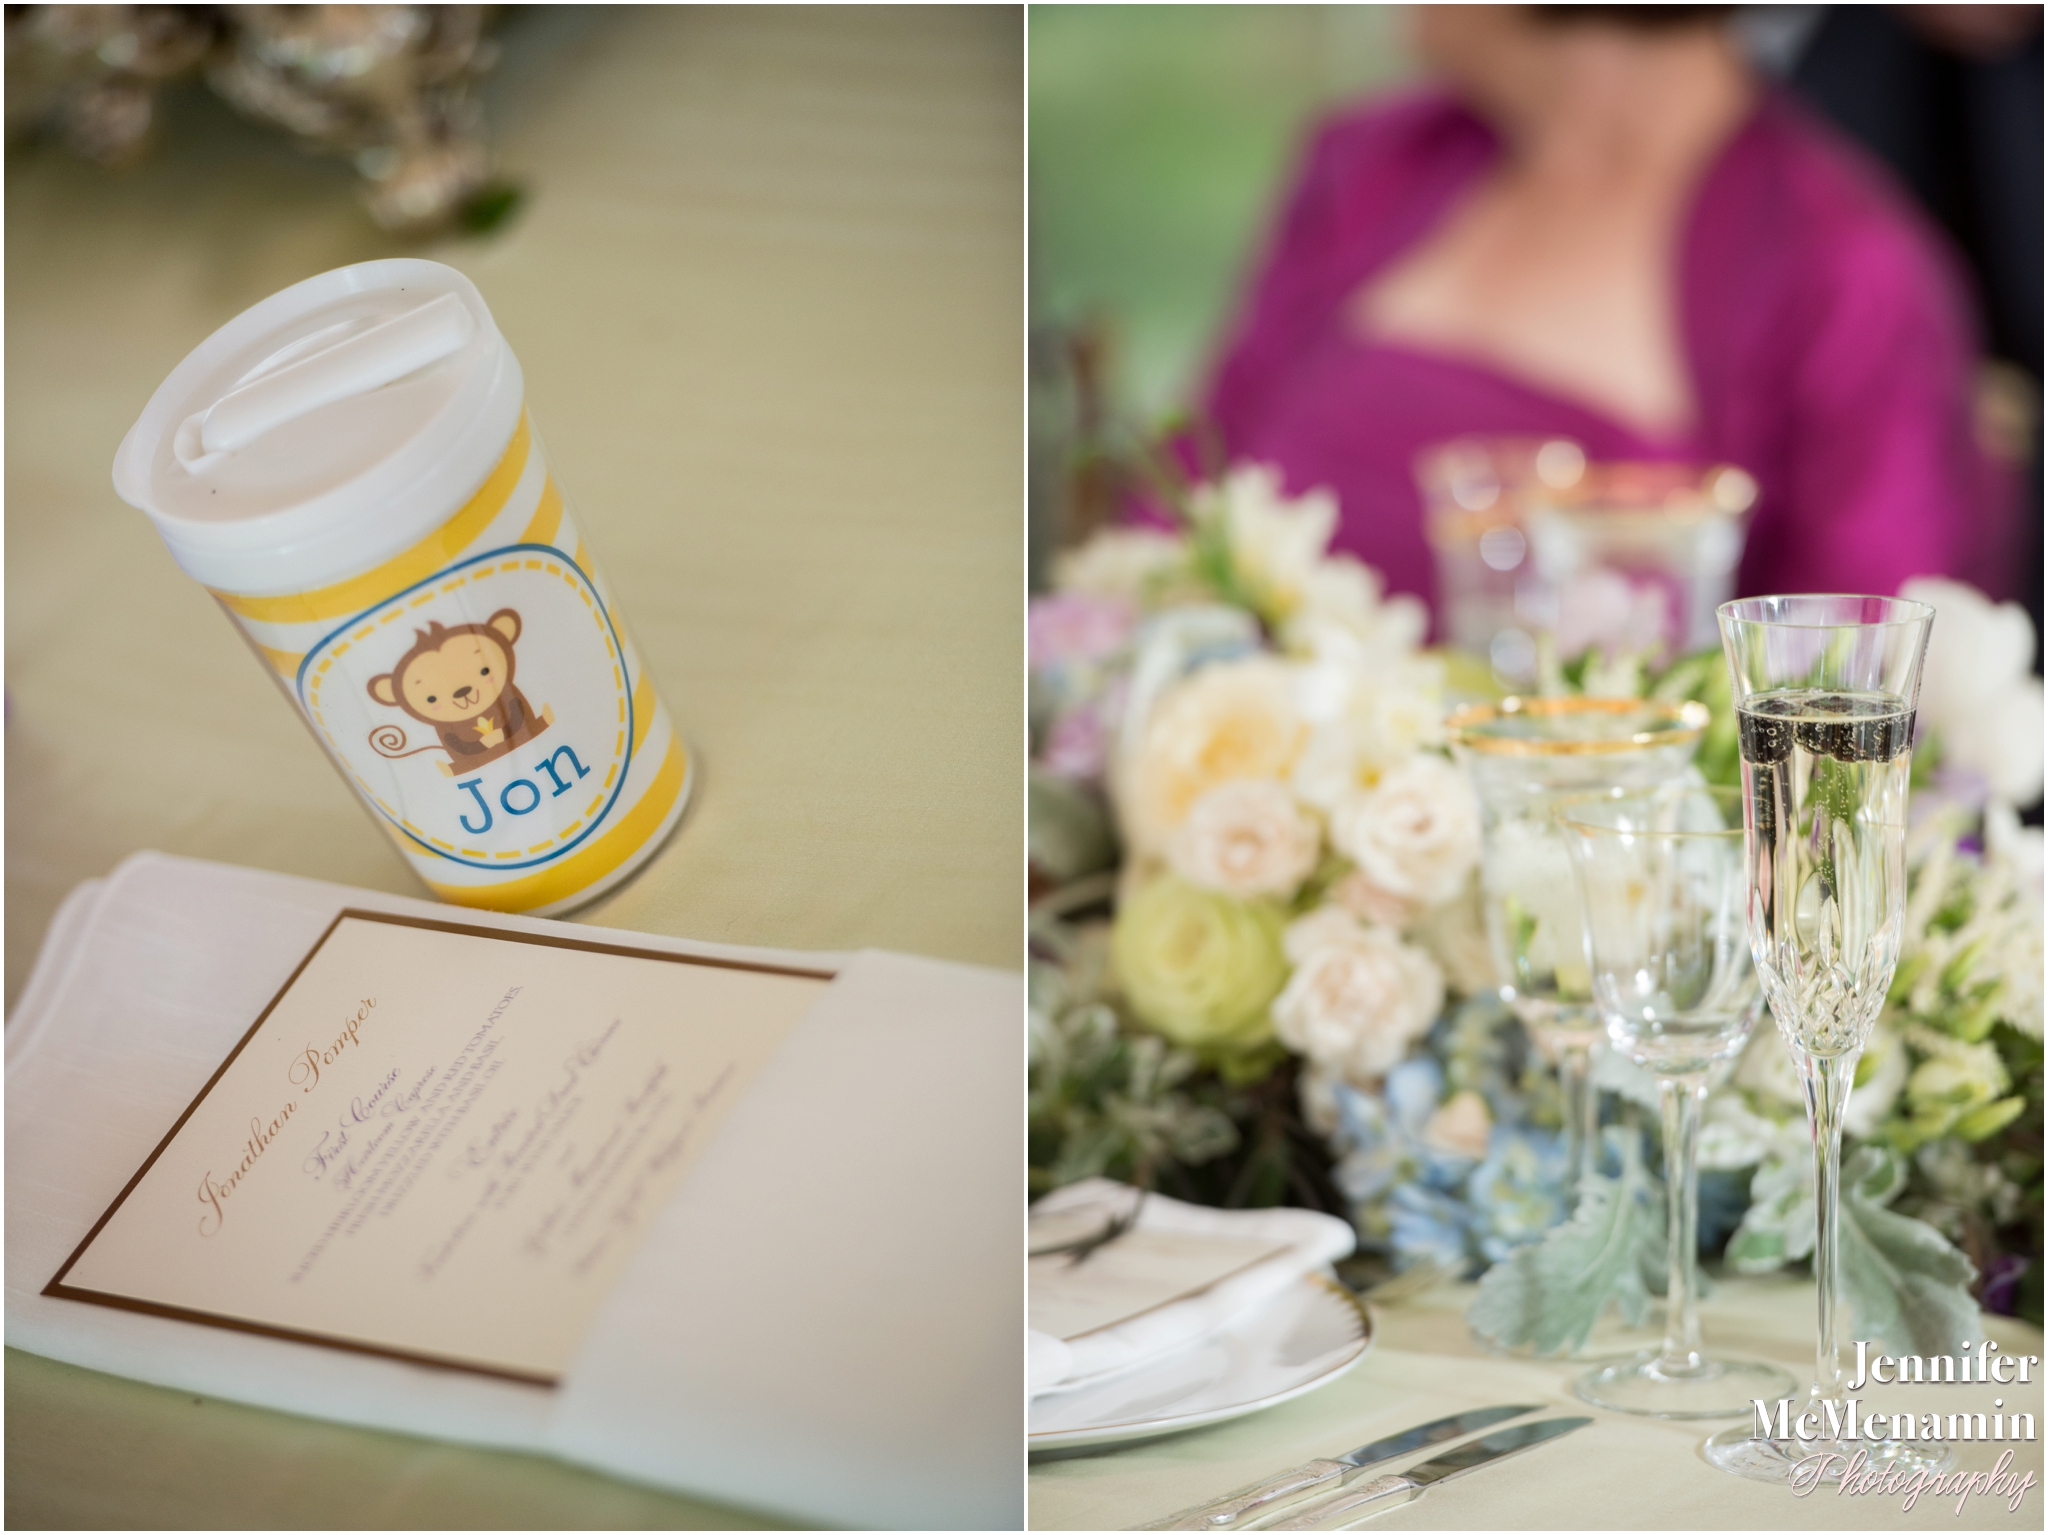 064-CoughlinPomper_03075-0627_JenniferMcMenaminPhotography_Private-Residence-Roland-Park_Baltimore-Wedding-Photography